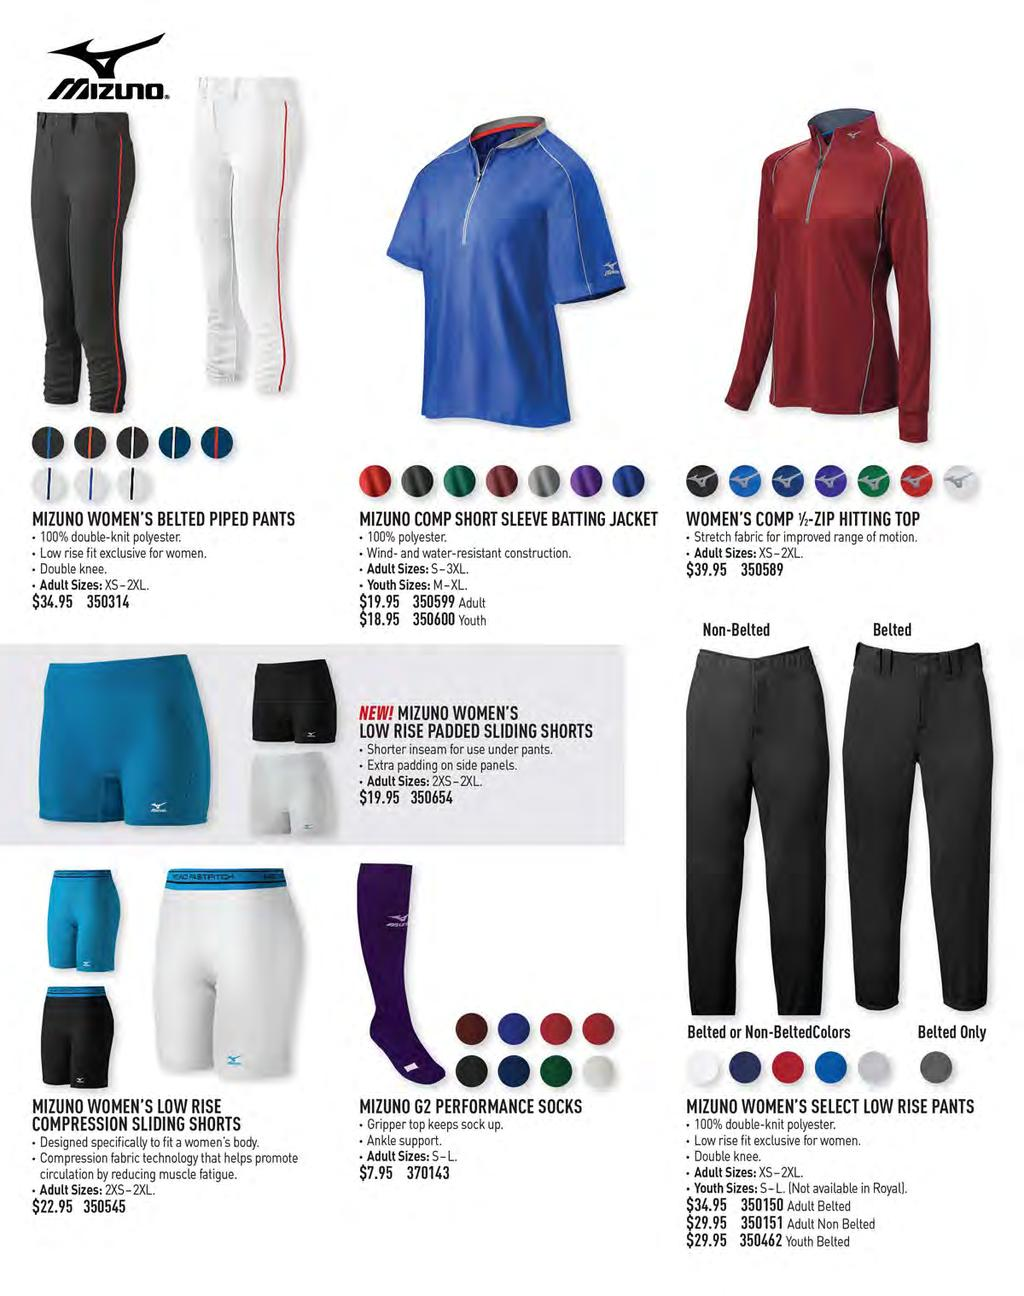 95f141aaef6   I ft ft I MIZUNO WOMEN S BELTED PIPED PANTS 100% double-knit polyester